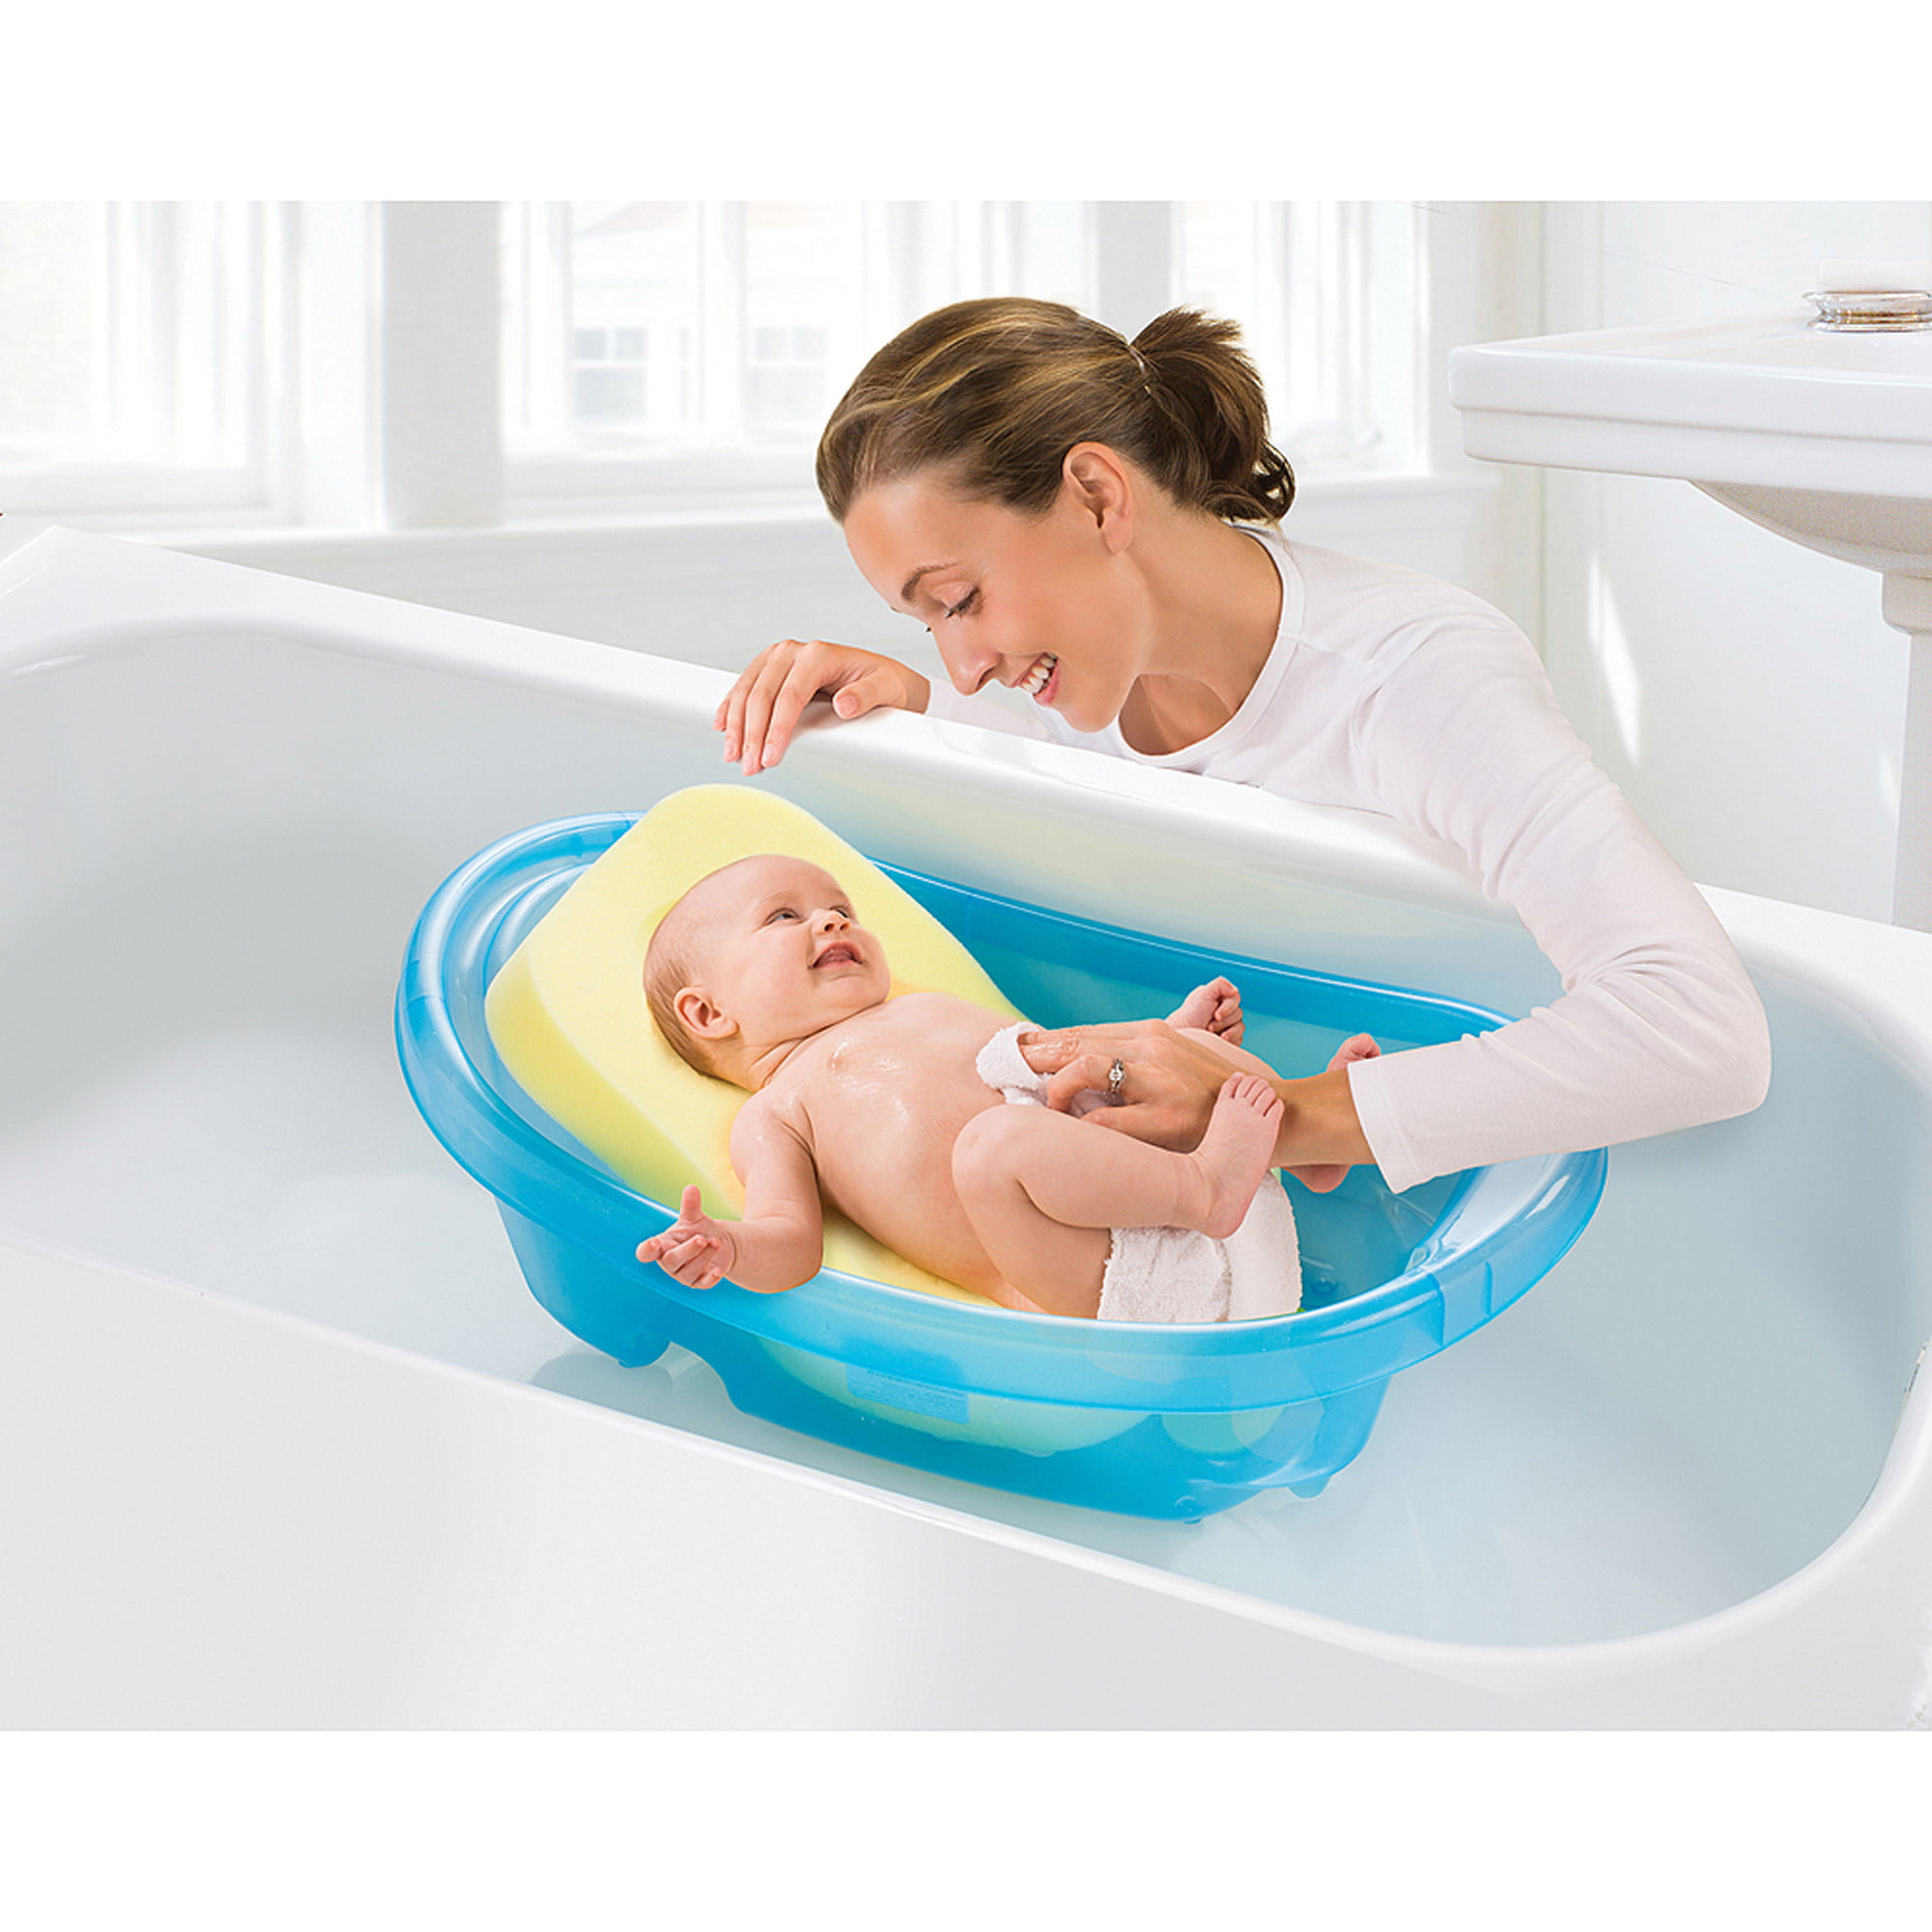 Baby bath chair walmart - Baby Bath Chair Walmart 18